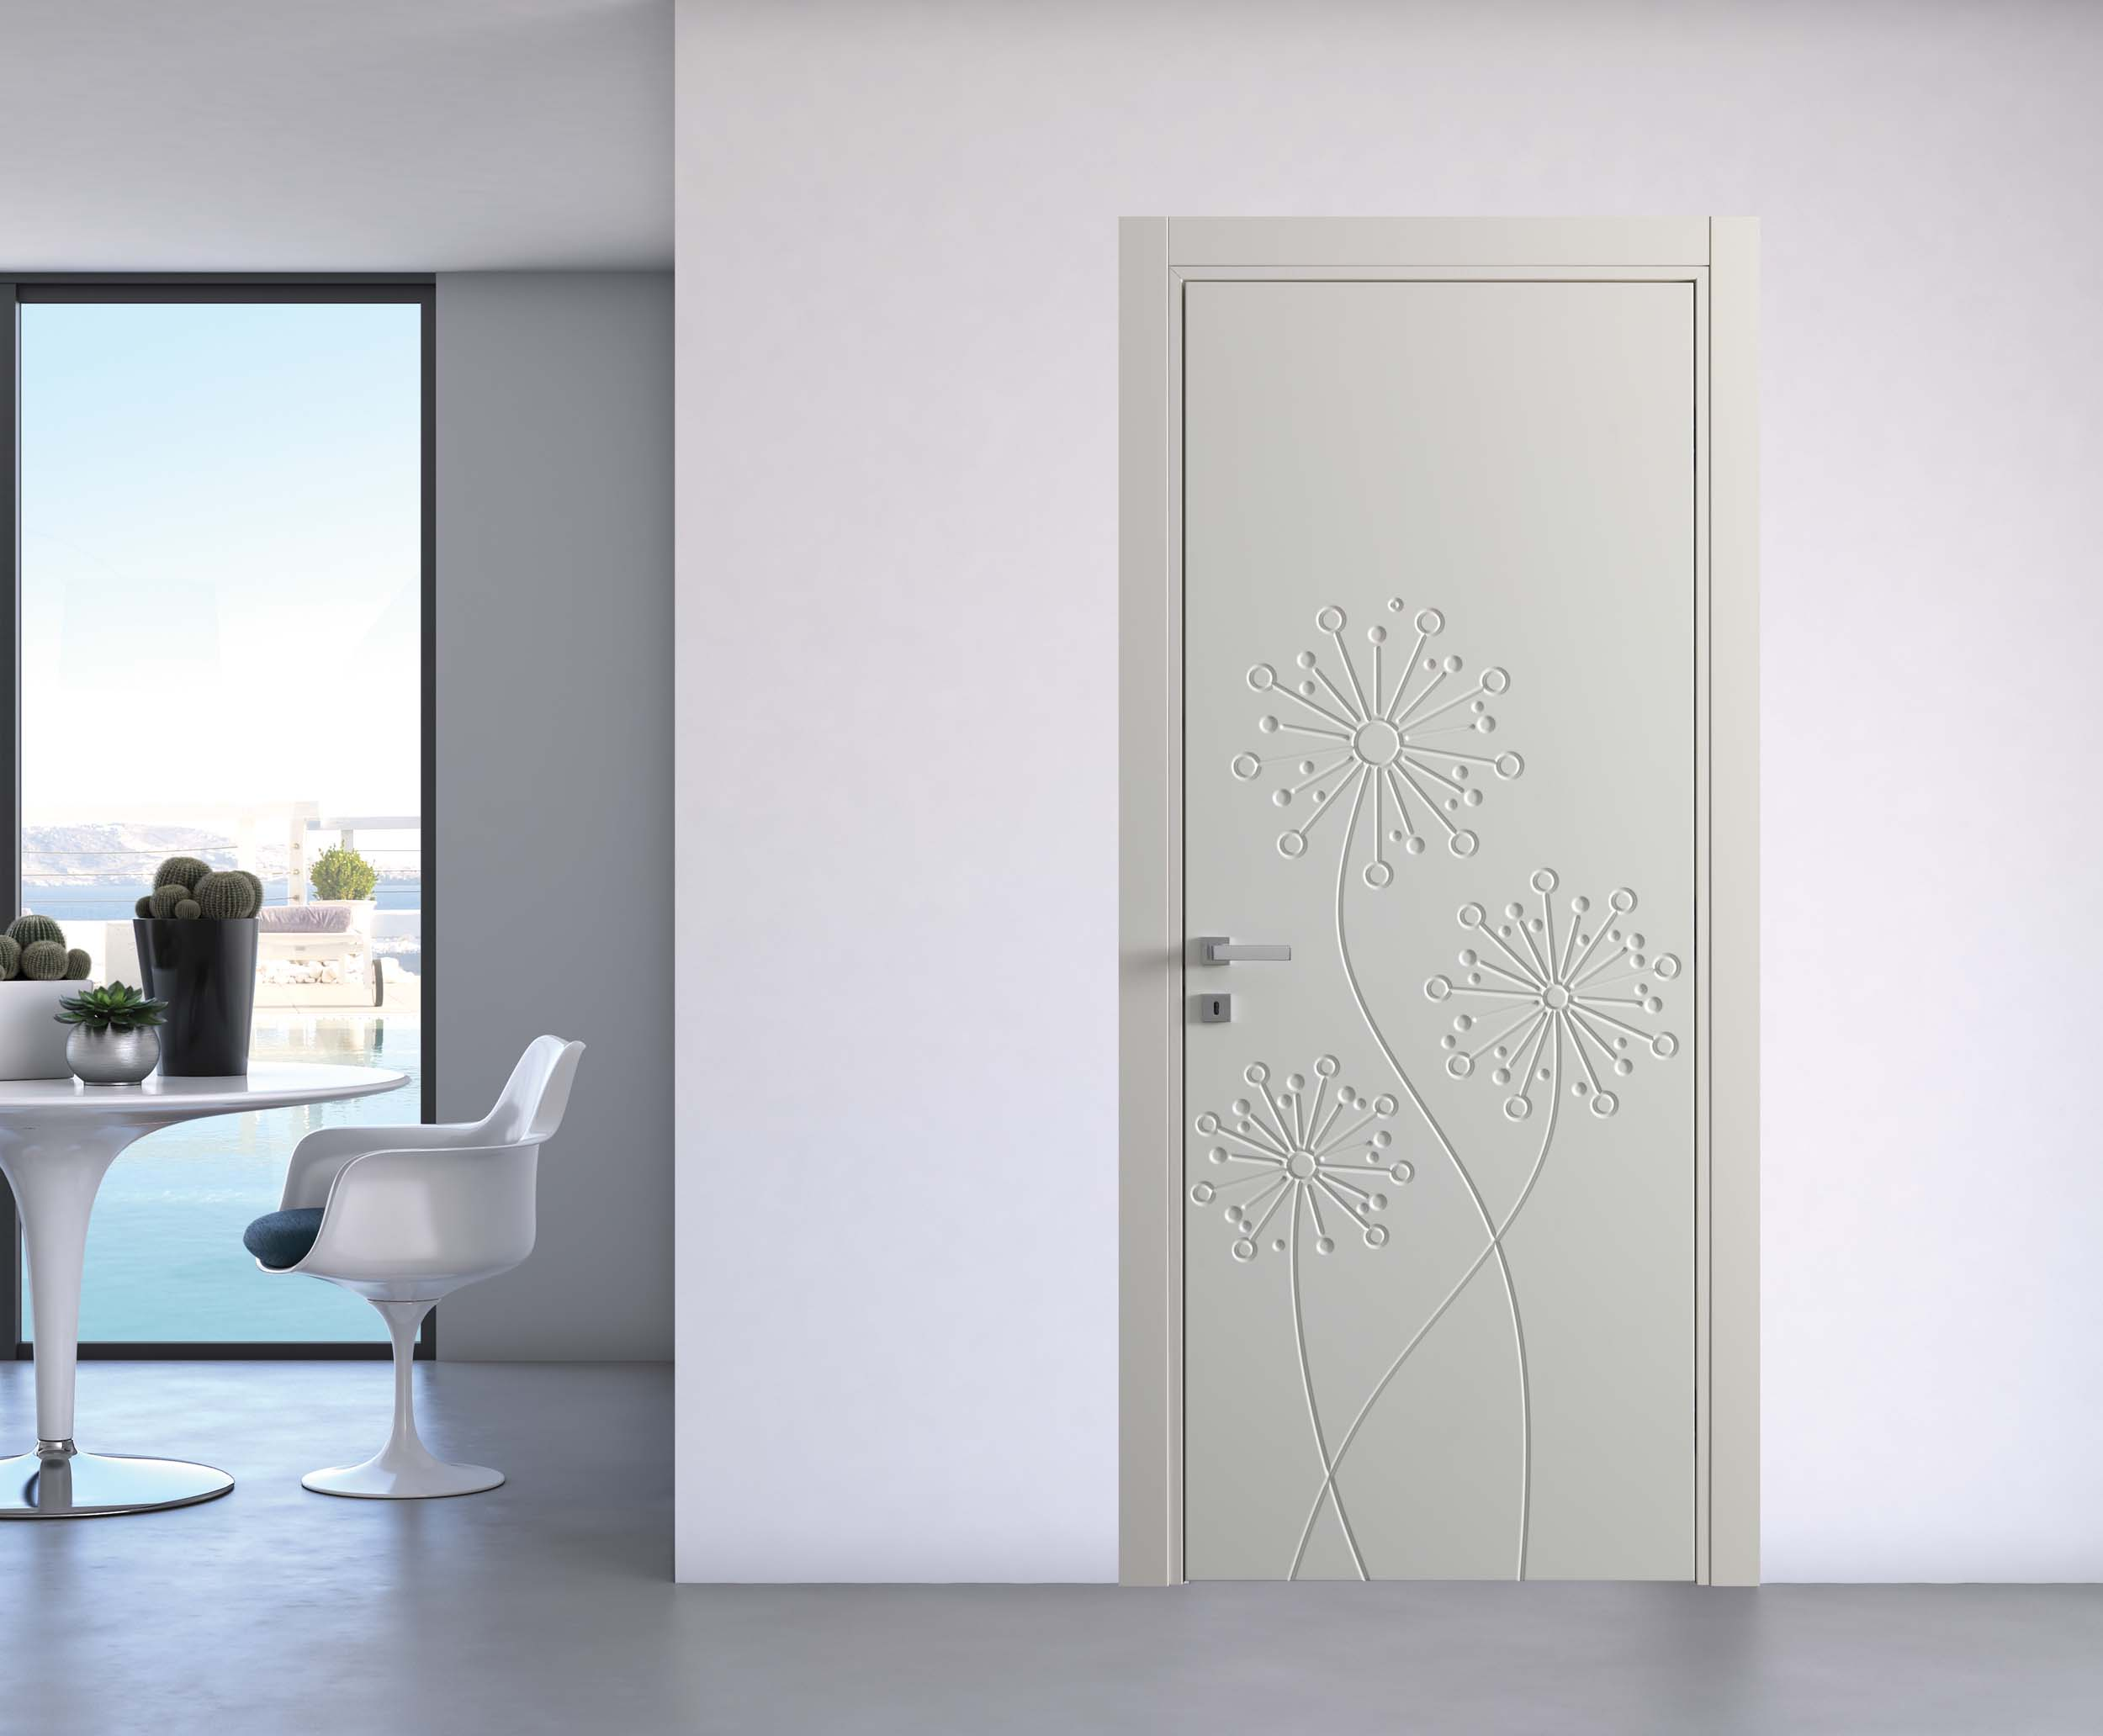 Porte laccate decorate materiali ed offerte delle for Programmi design